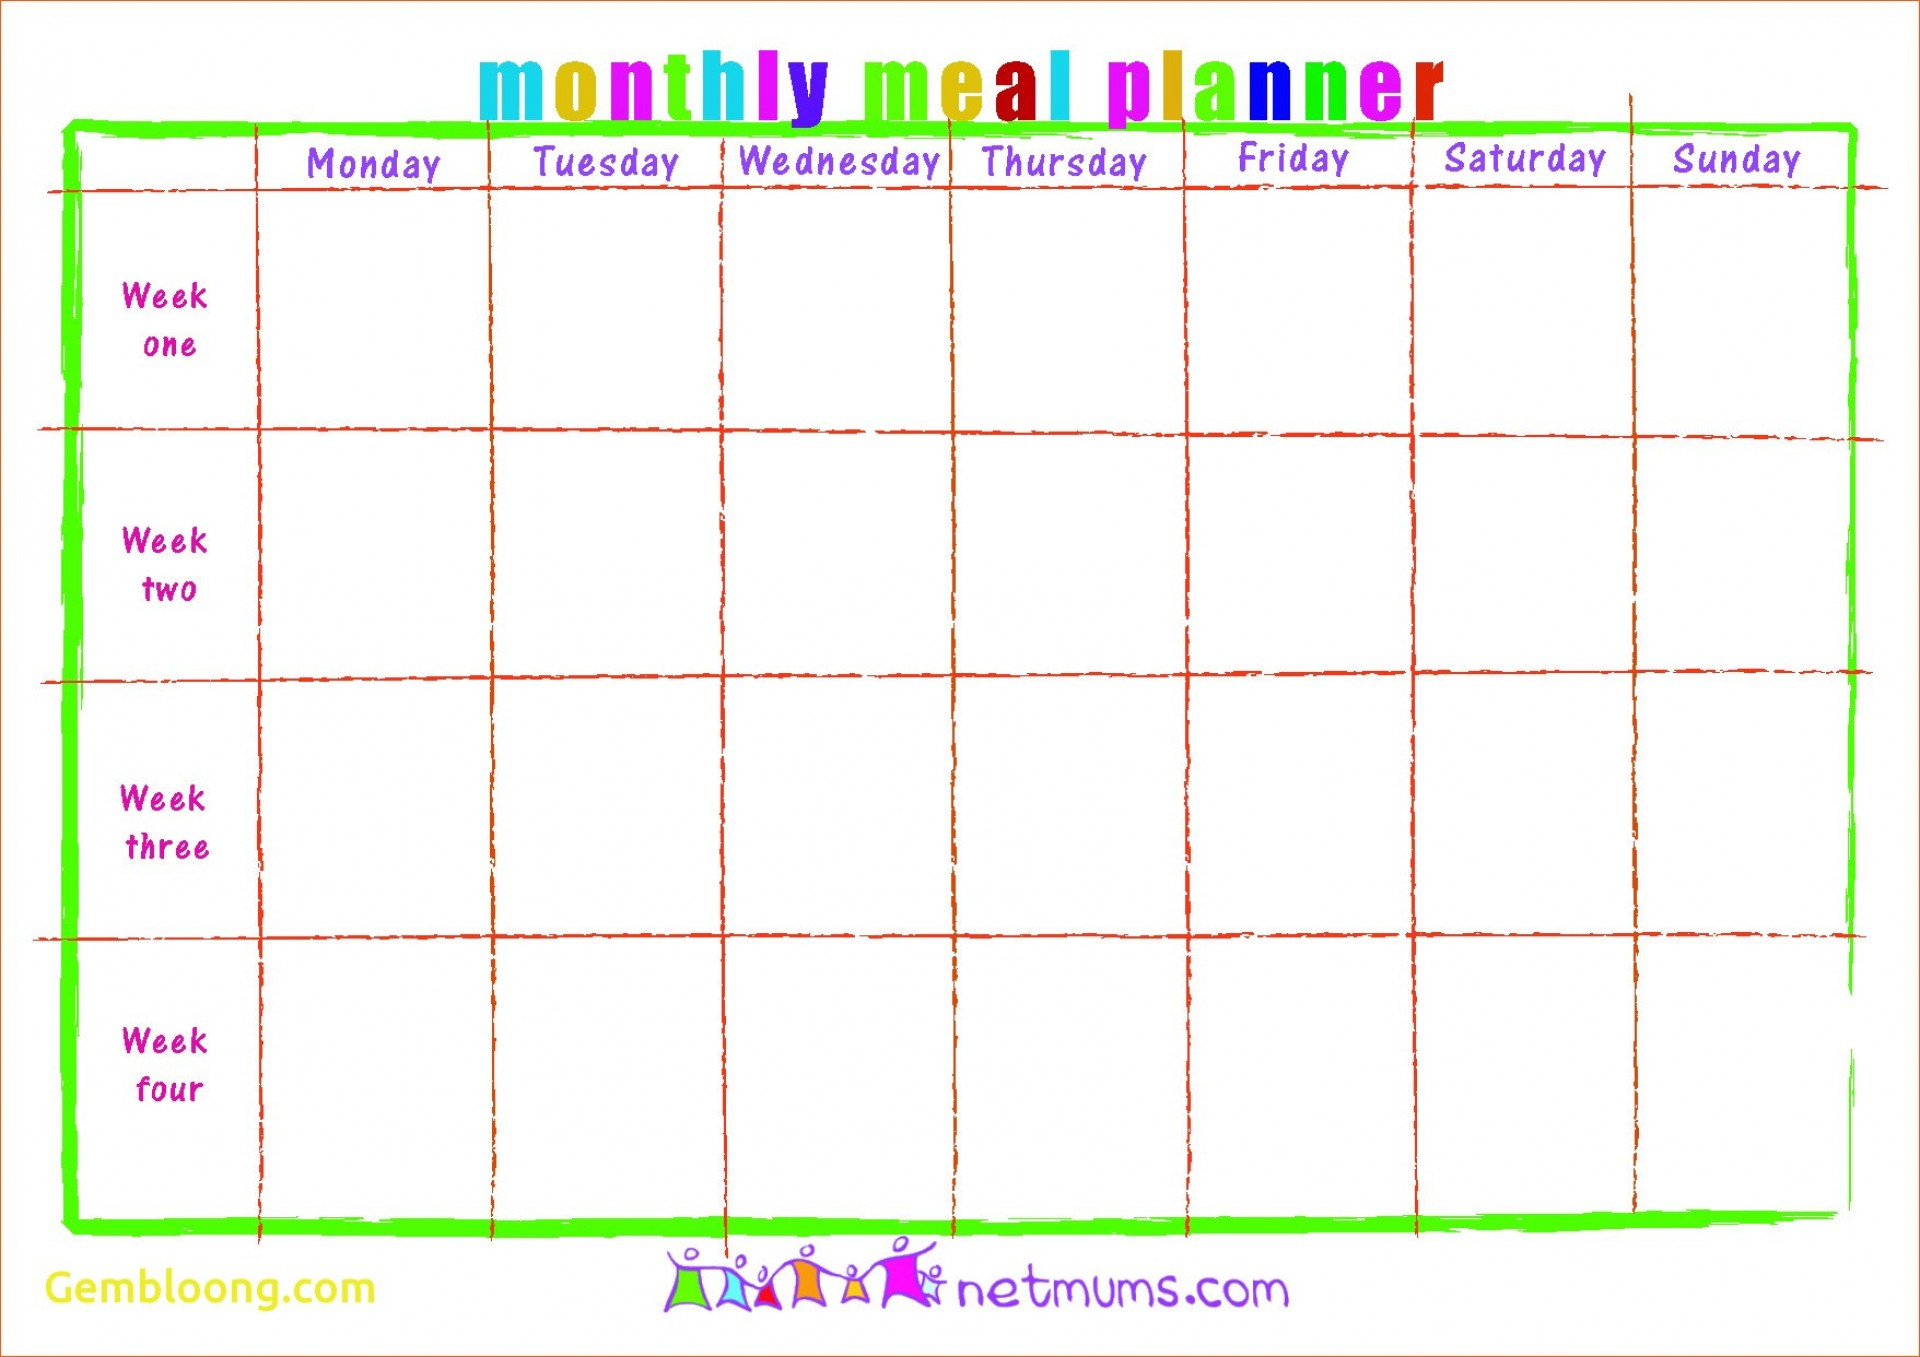 Bodybuilding Meal Plan Excel Spreadsheet With Regard To 015 Template Ideas Weekly Meal Planner Excel Beautiful Plan Best